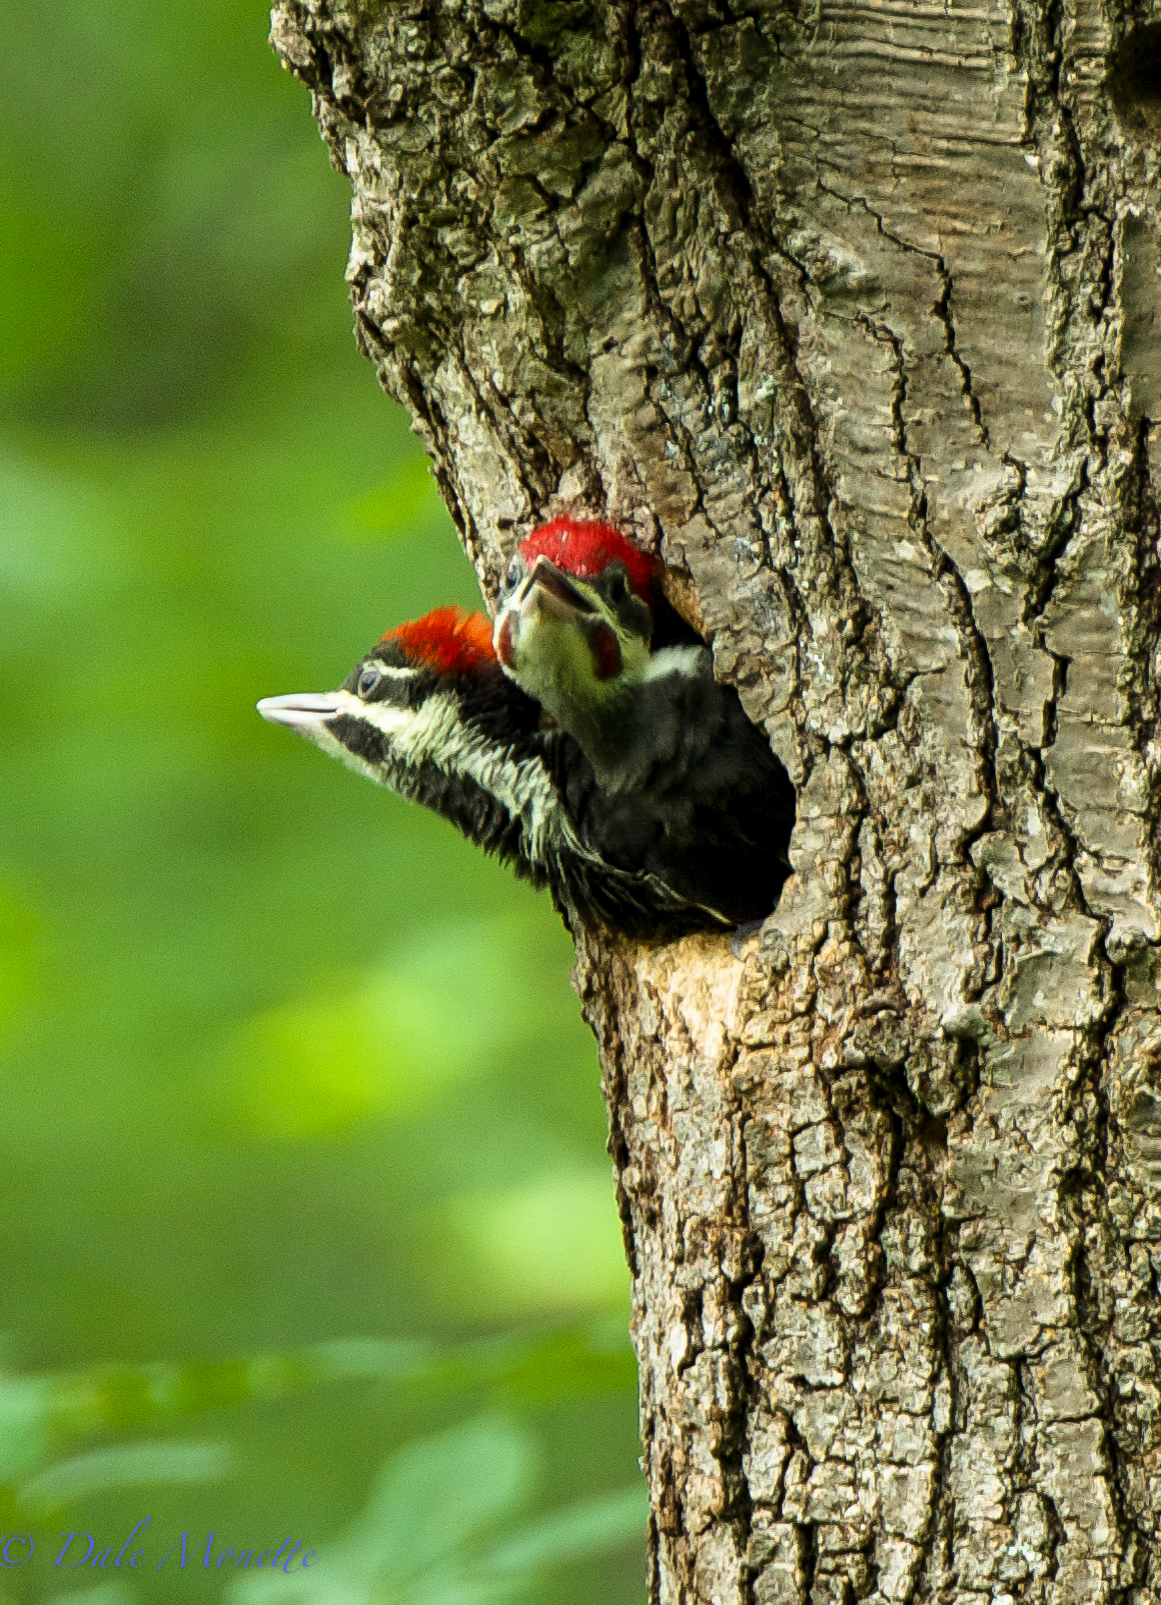 The female pileated chick on the left and the male is on the right.